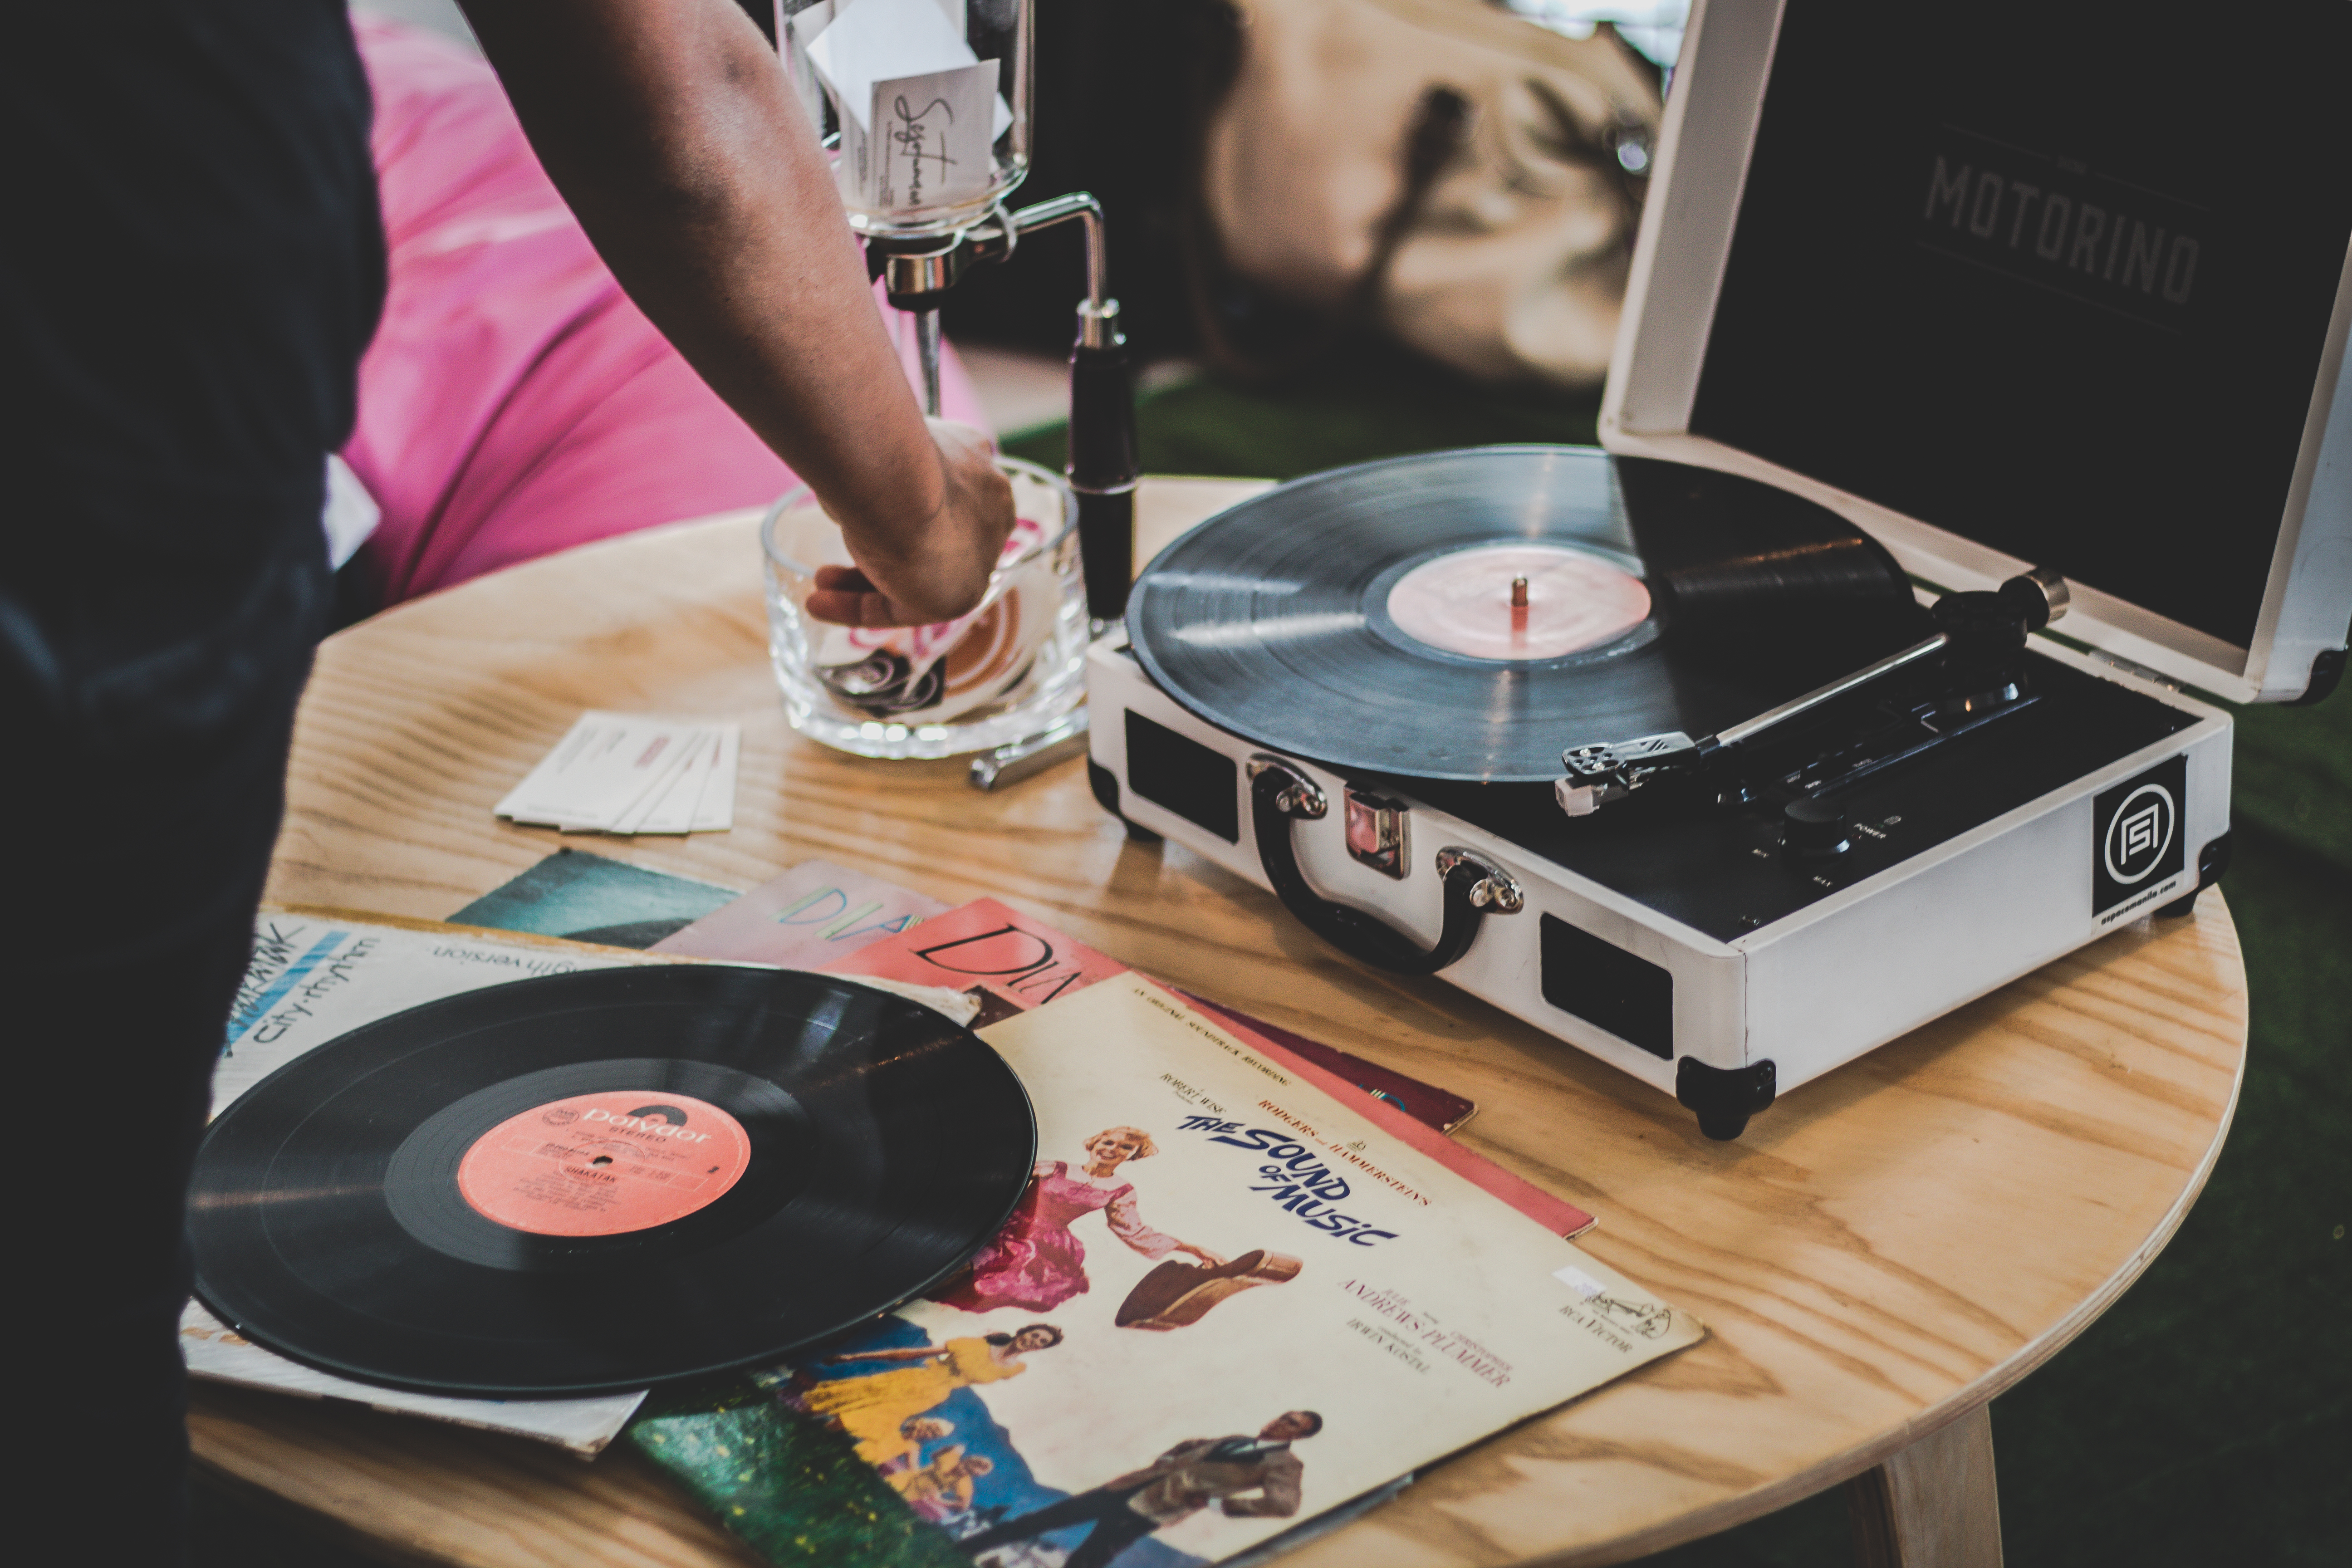 Person Near Vinyl Record Player on Brown Surface